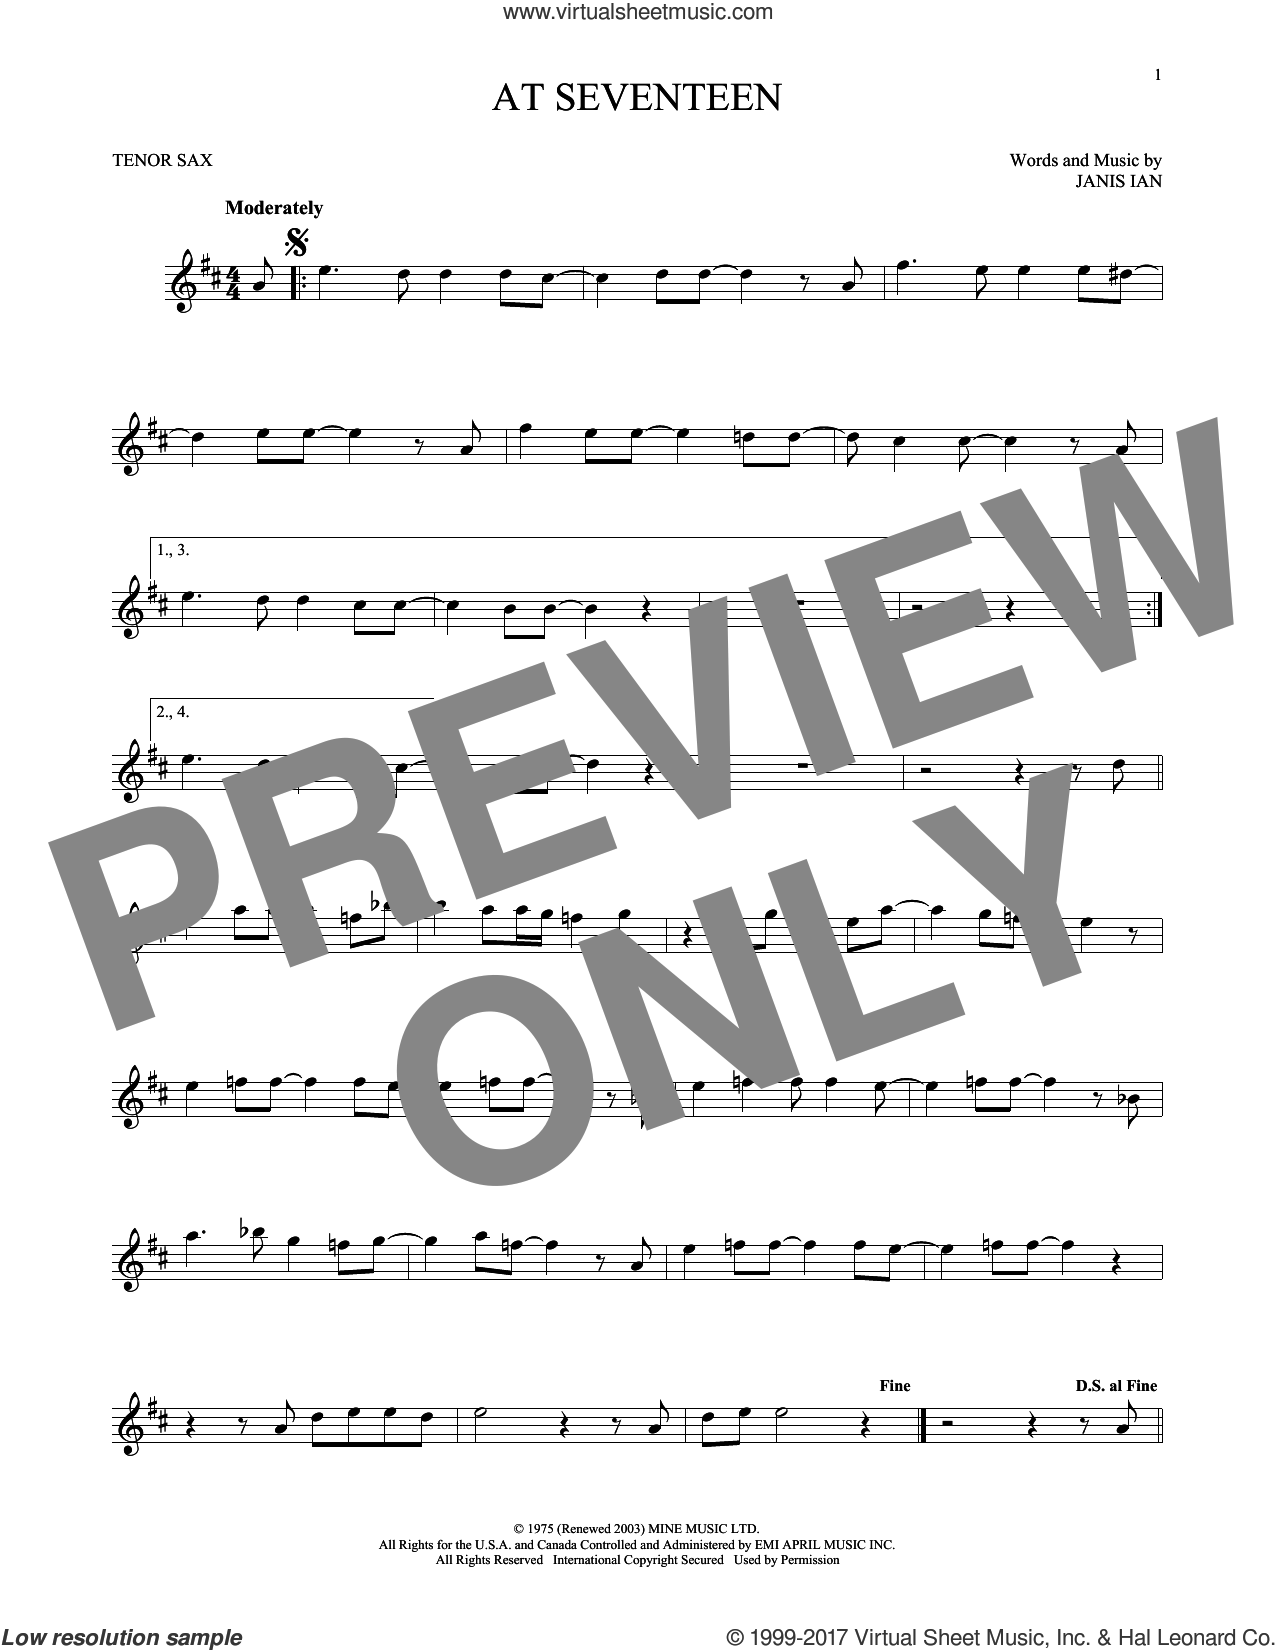 At Seventeen sheet music for tenor saxophone solo by Janis Ian, intermediate skill level